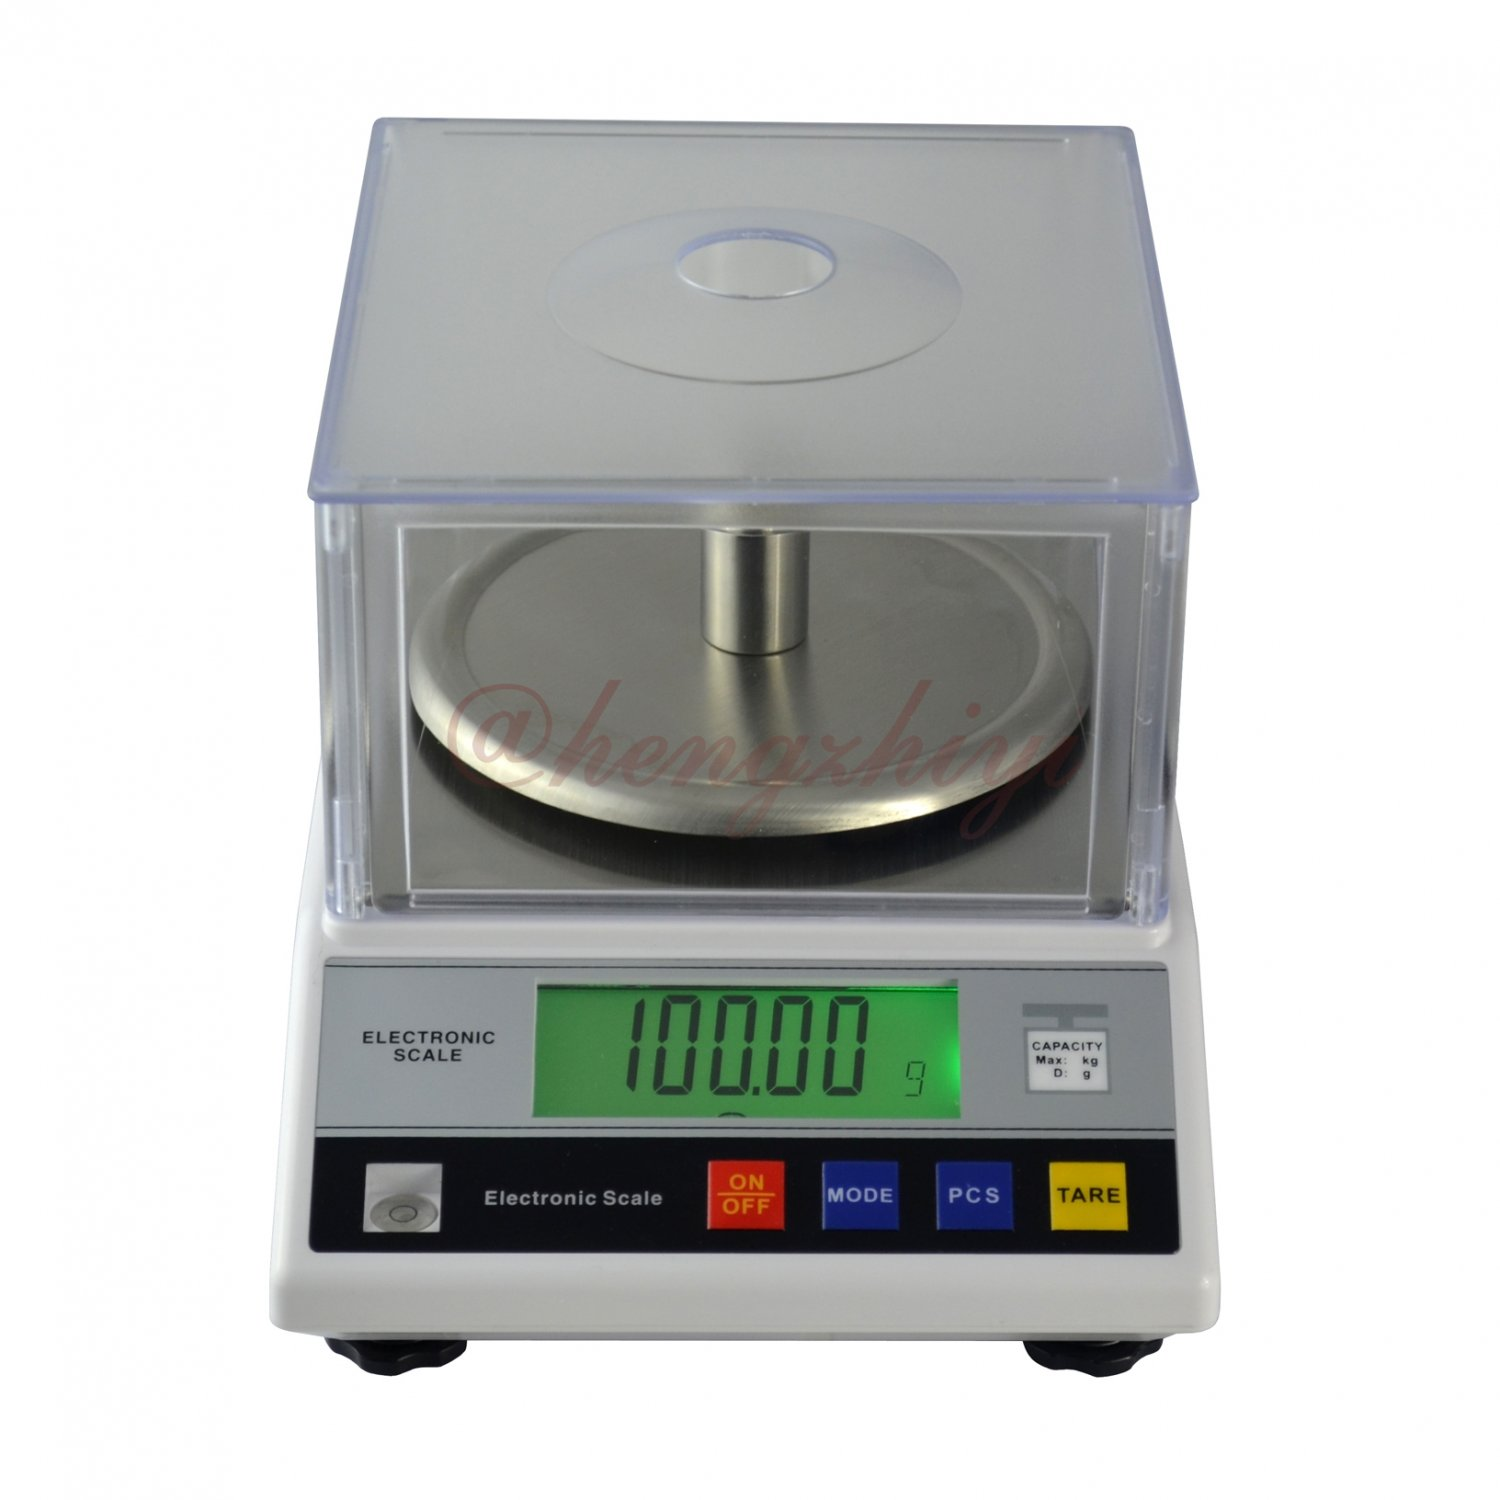 300g x 0.01g Digital Precision Jewelry Carat Scale Balance w Wind Shield + Counting, Free Shipping